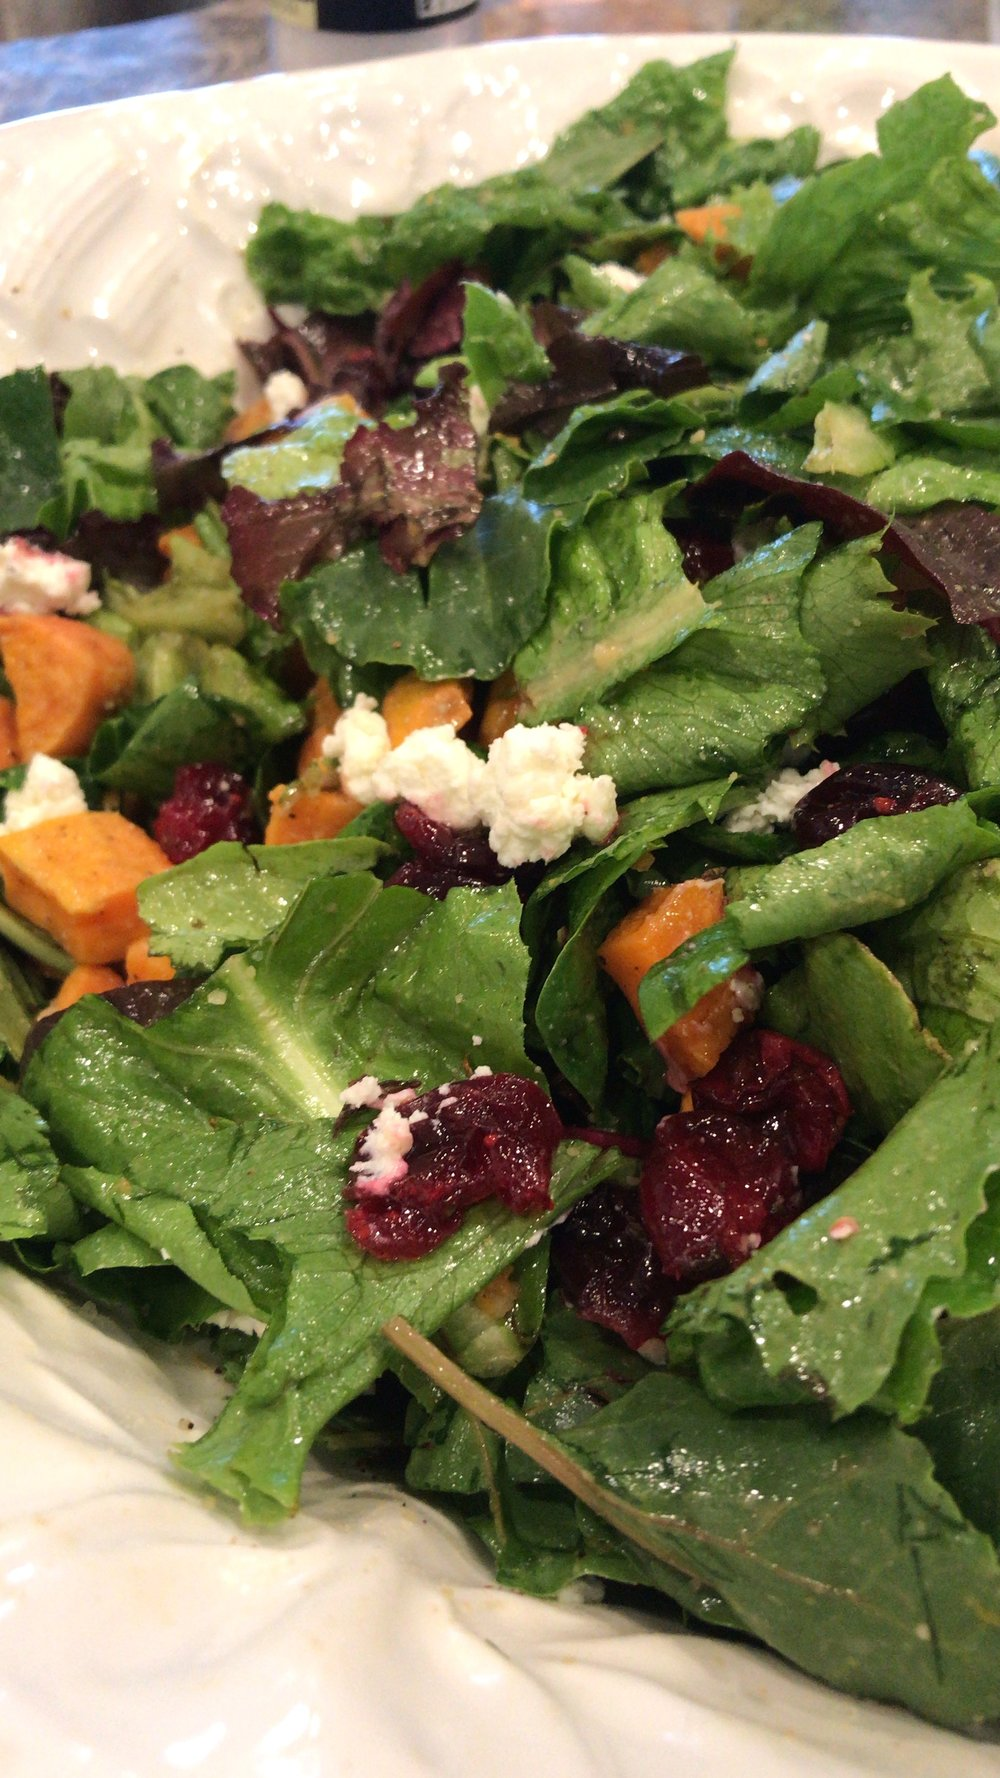 Harvest salad with roasted butternut squash, cranberries, and goat cheese.